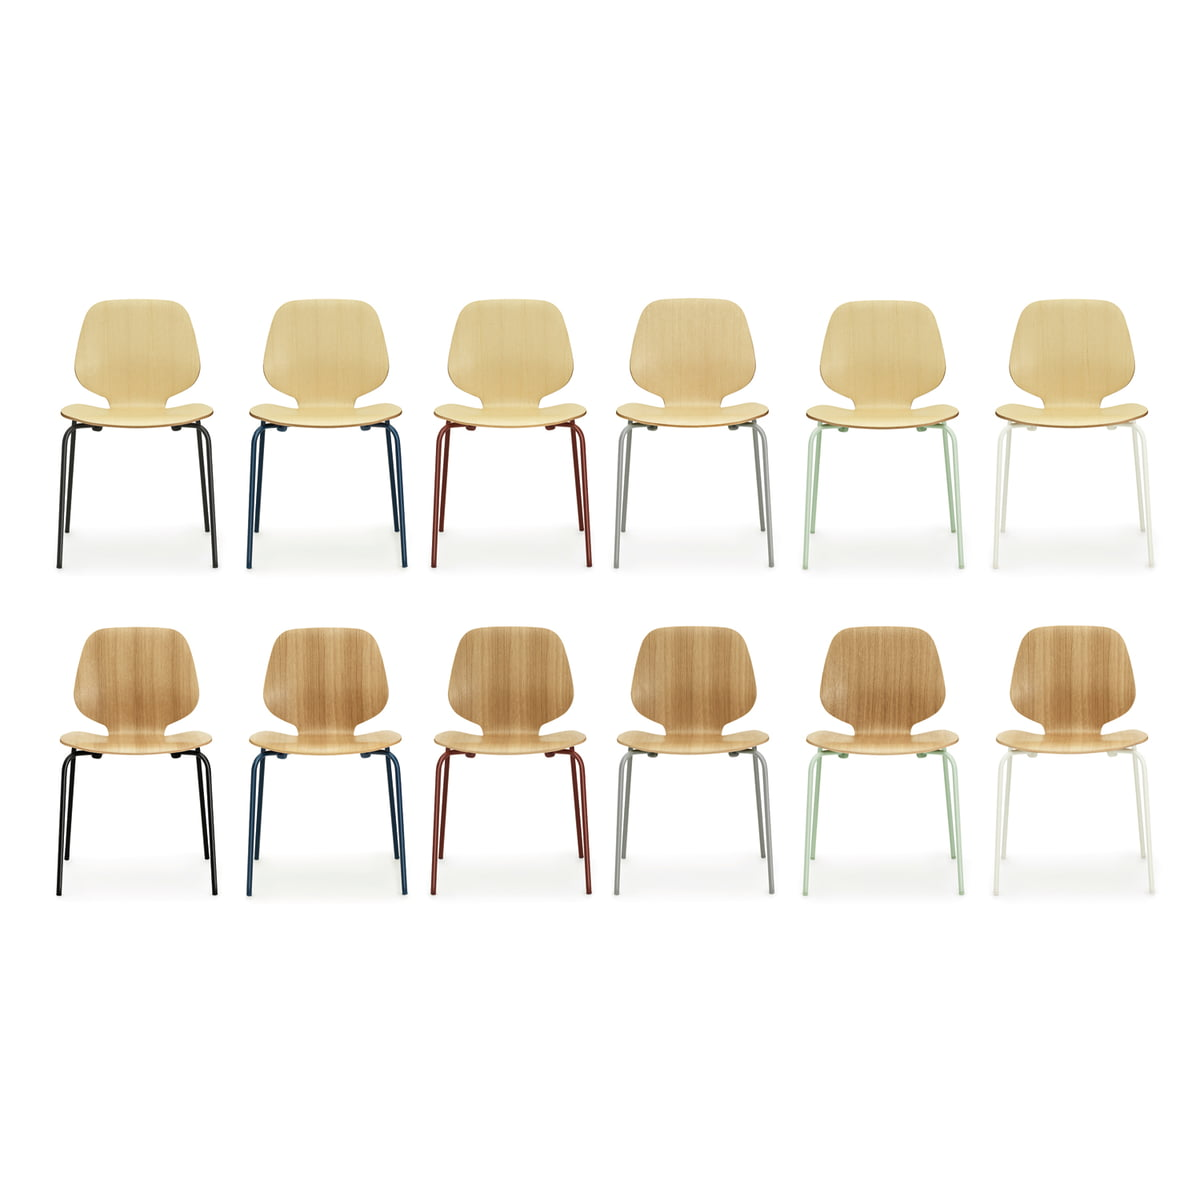 My chair by normann copenhagen in the shop for Normann copenhagen shop